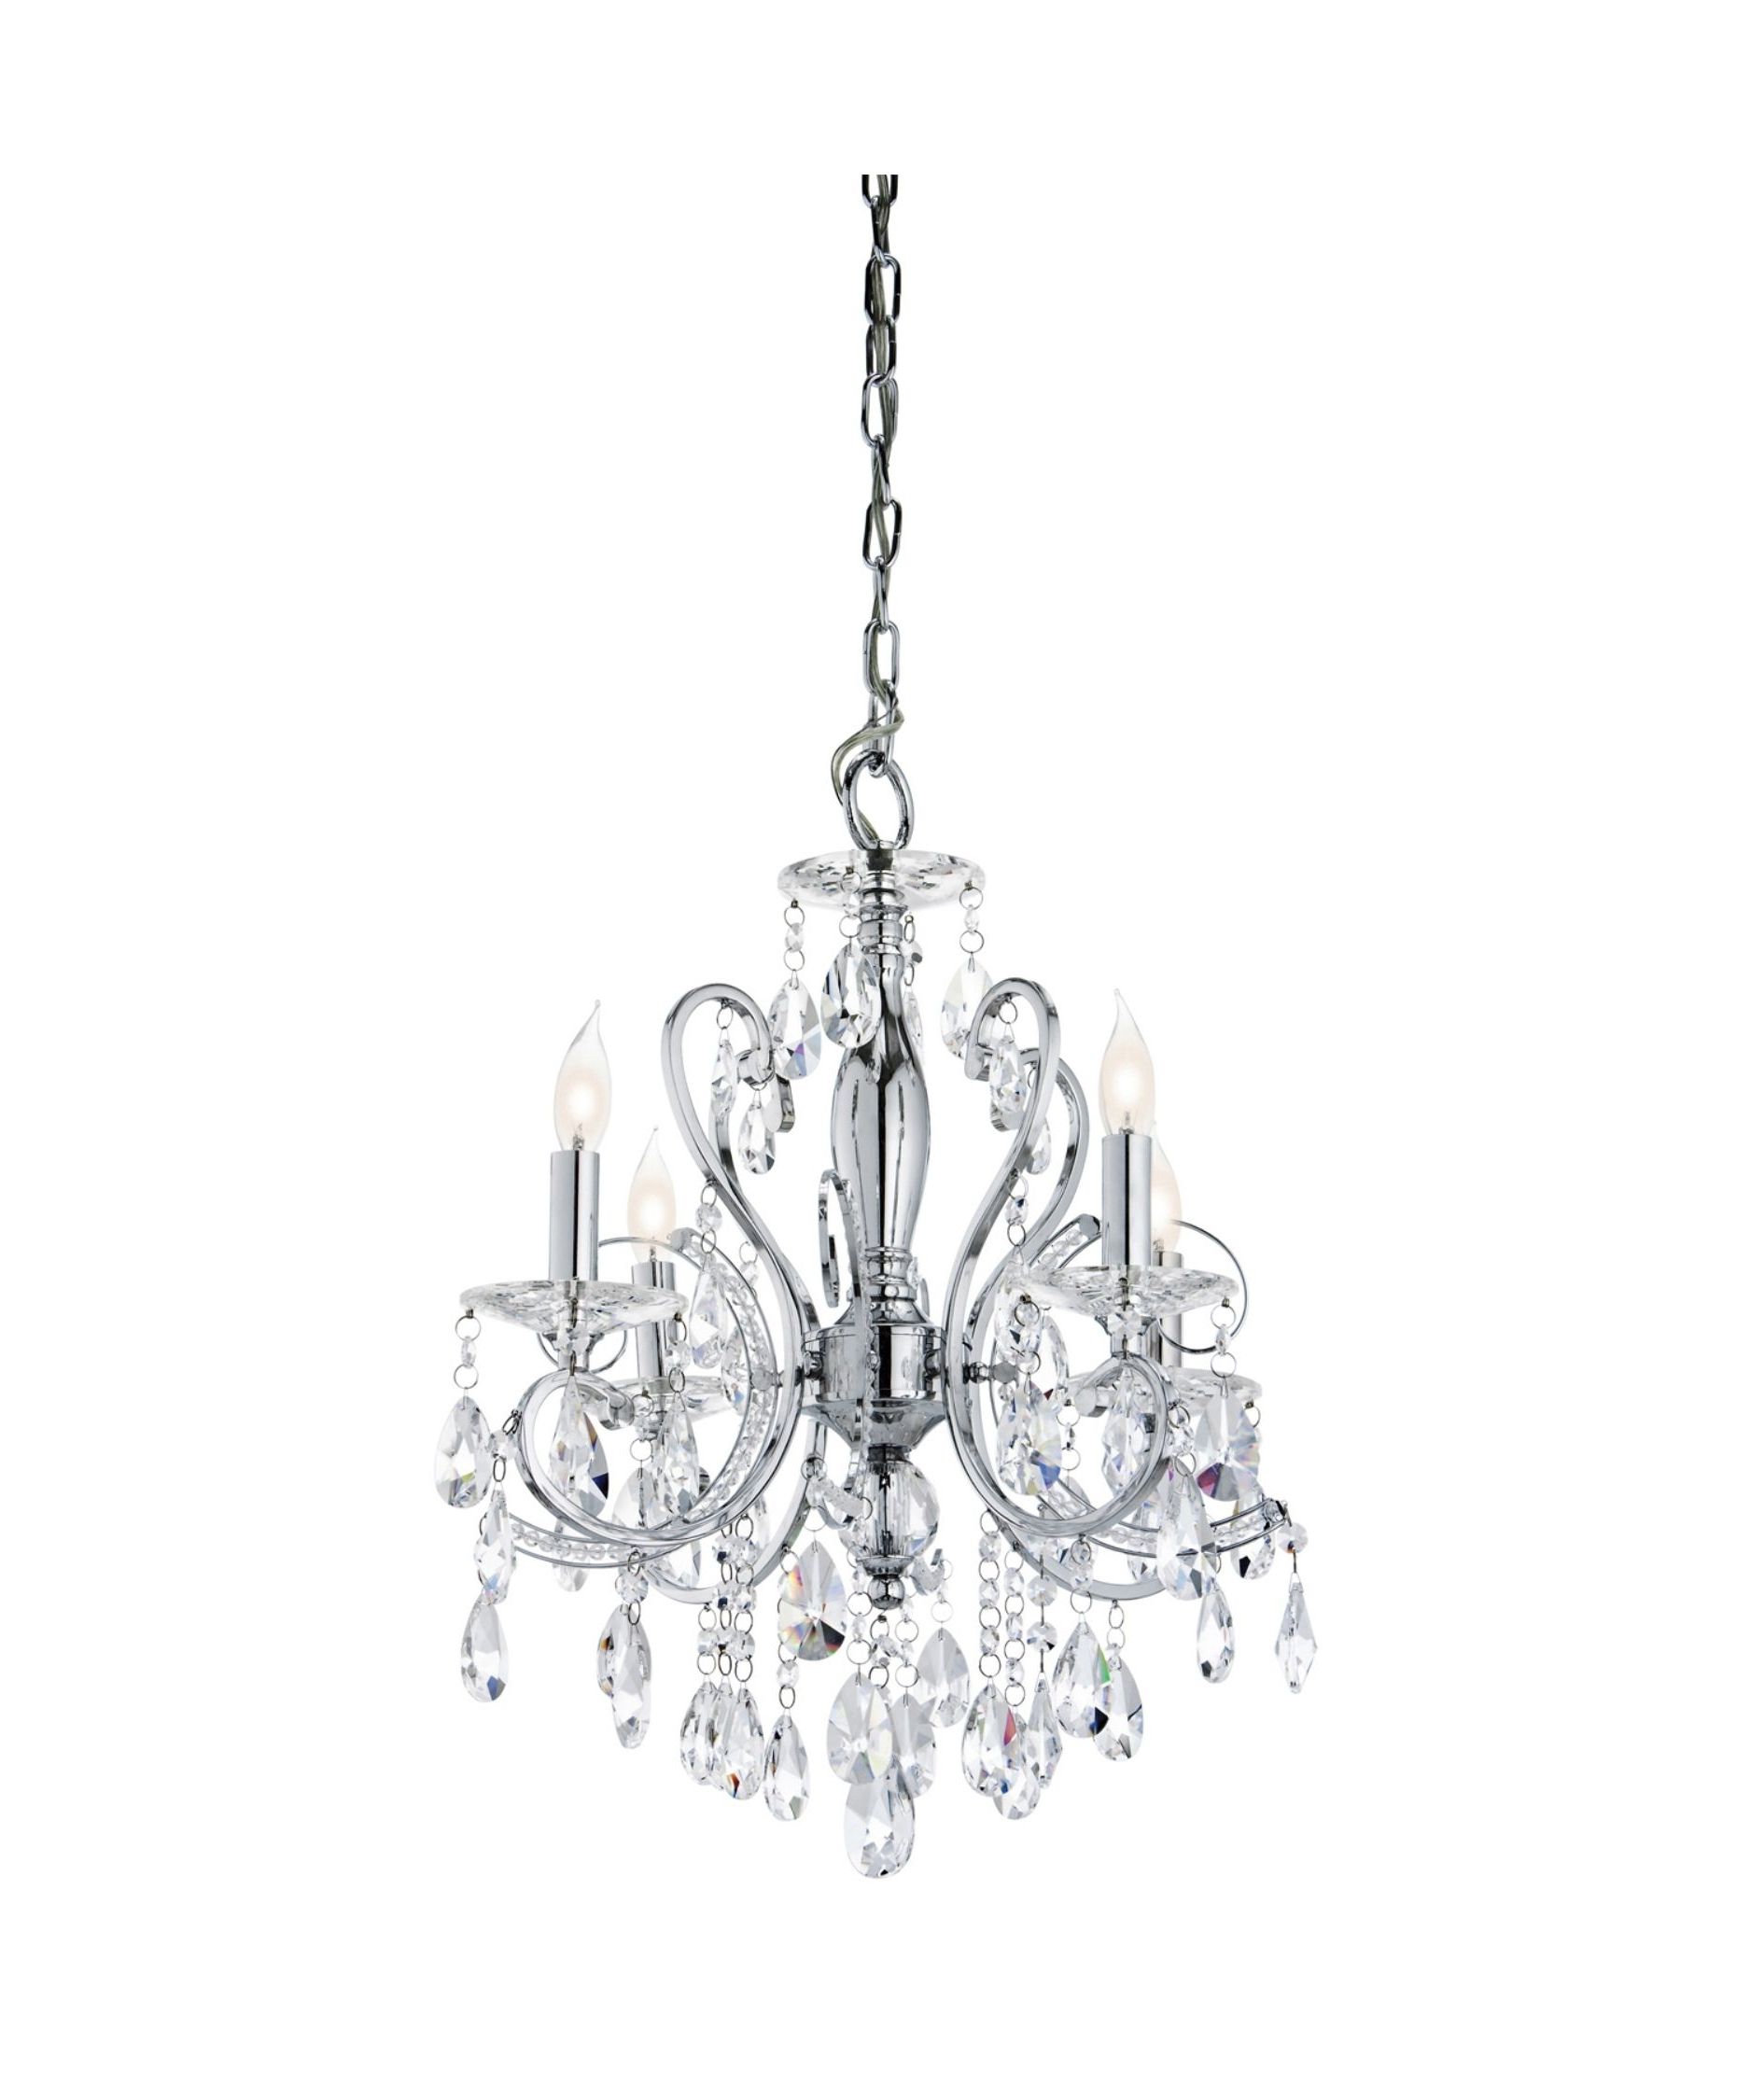 2019 Mini Bathroom Chandeliers Pertaining To Nice Mini Chandelier For Bathroom #7 Mini Crystal Chandelier (View 8 of 20)